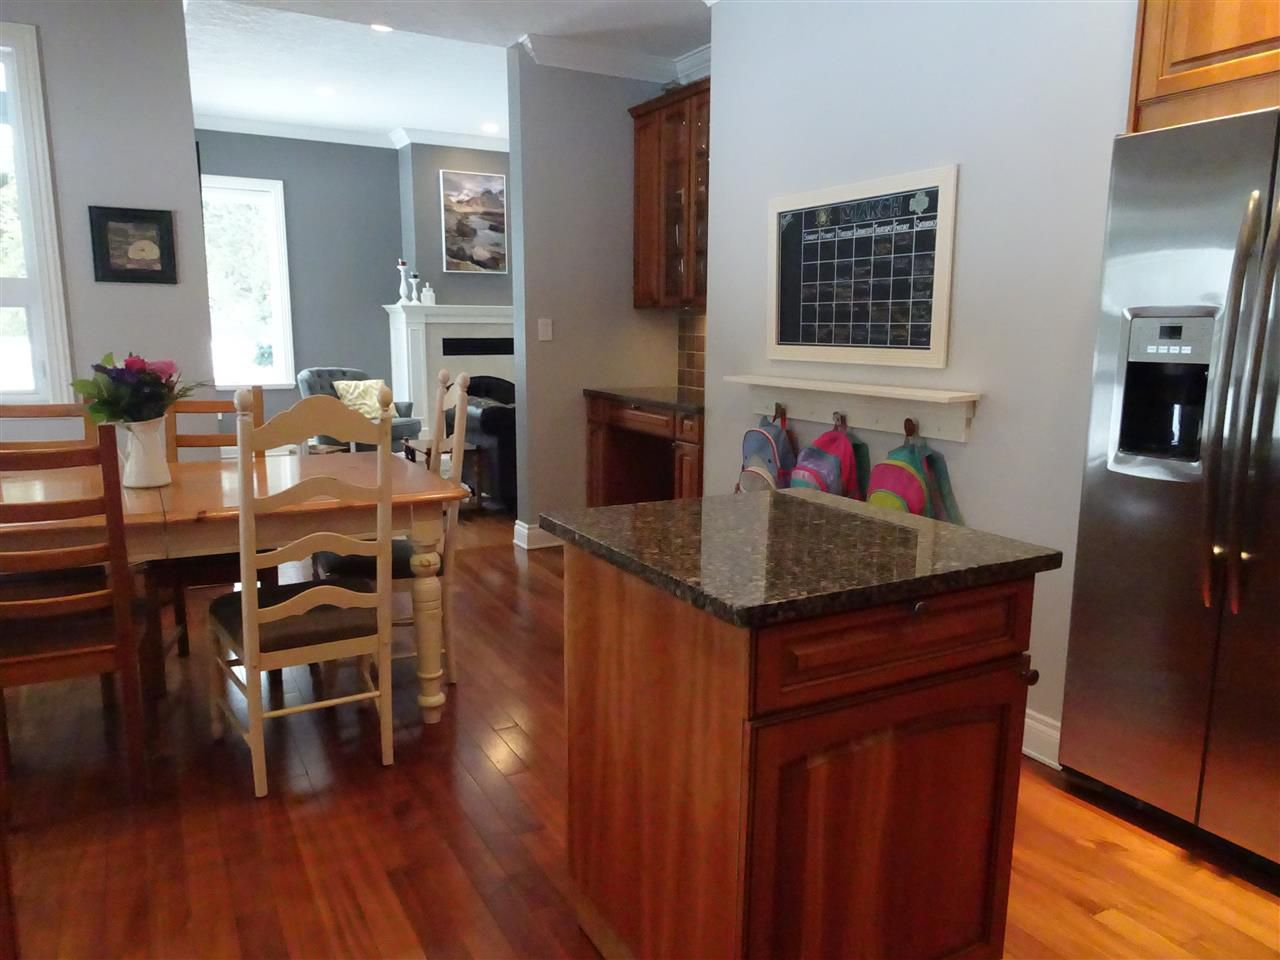 """Photo 6: Photos: 6447 BENCH Drive in Prince George: Nechako Bench House for sale in """"NORTH NECHAKO"""" (PG City North (Zone 73))  : MLS®# R2250059"""